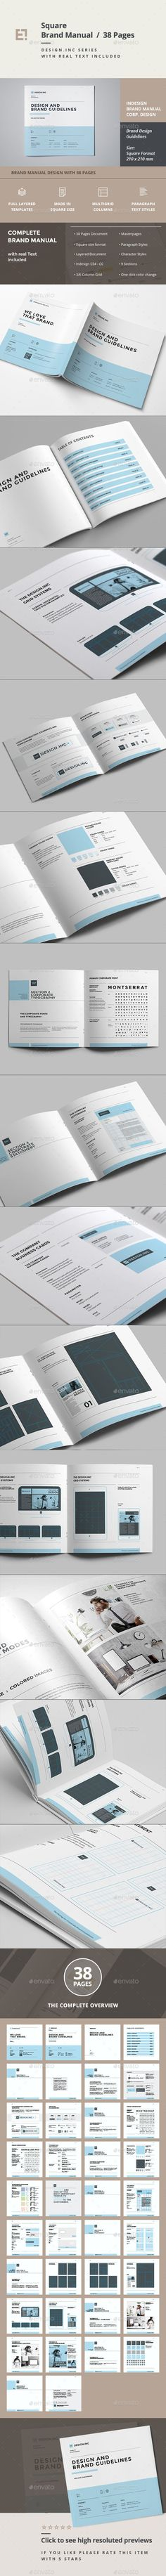 Brand Manual — InDesign INDD #typography #suisse • Available here → https://graphicriver.net/item/brand-manual-/11423681?ref=pxcr